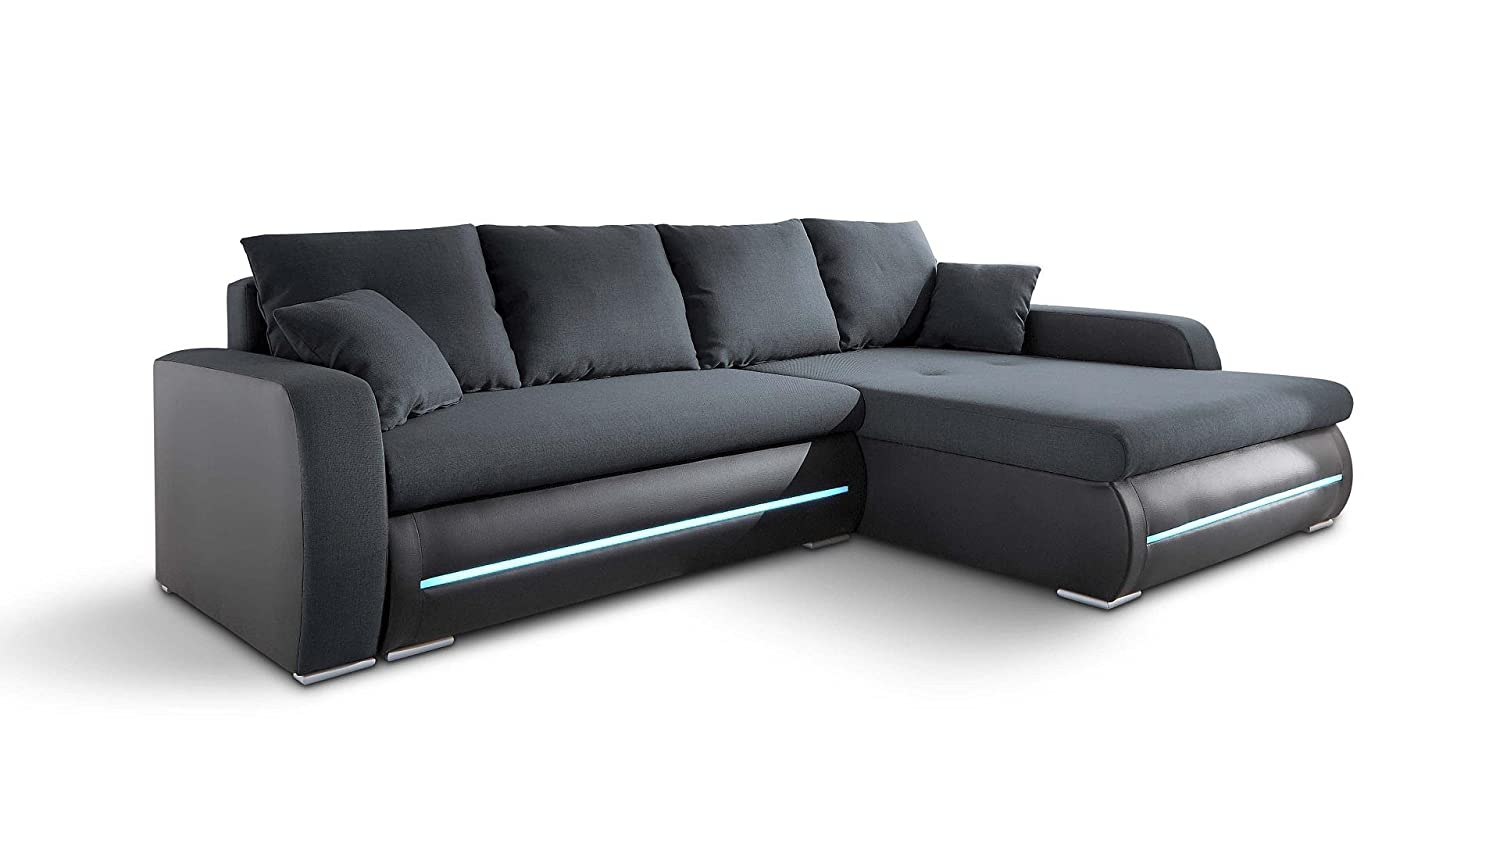 kunstleder sofa gnstig kunstleder sofa schwarz sofa online gnstig ecksofa cosmo longchair mit. Black Bedroom Furniture Sets. Home Design Ideas